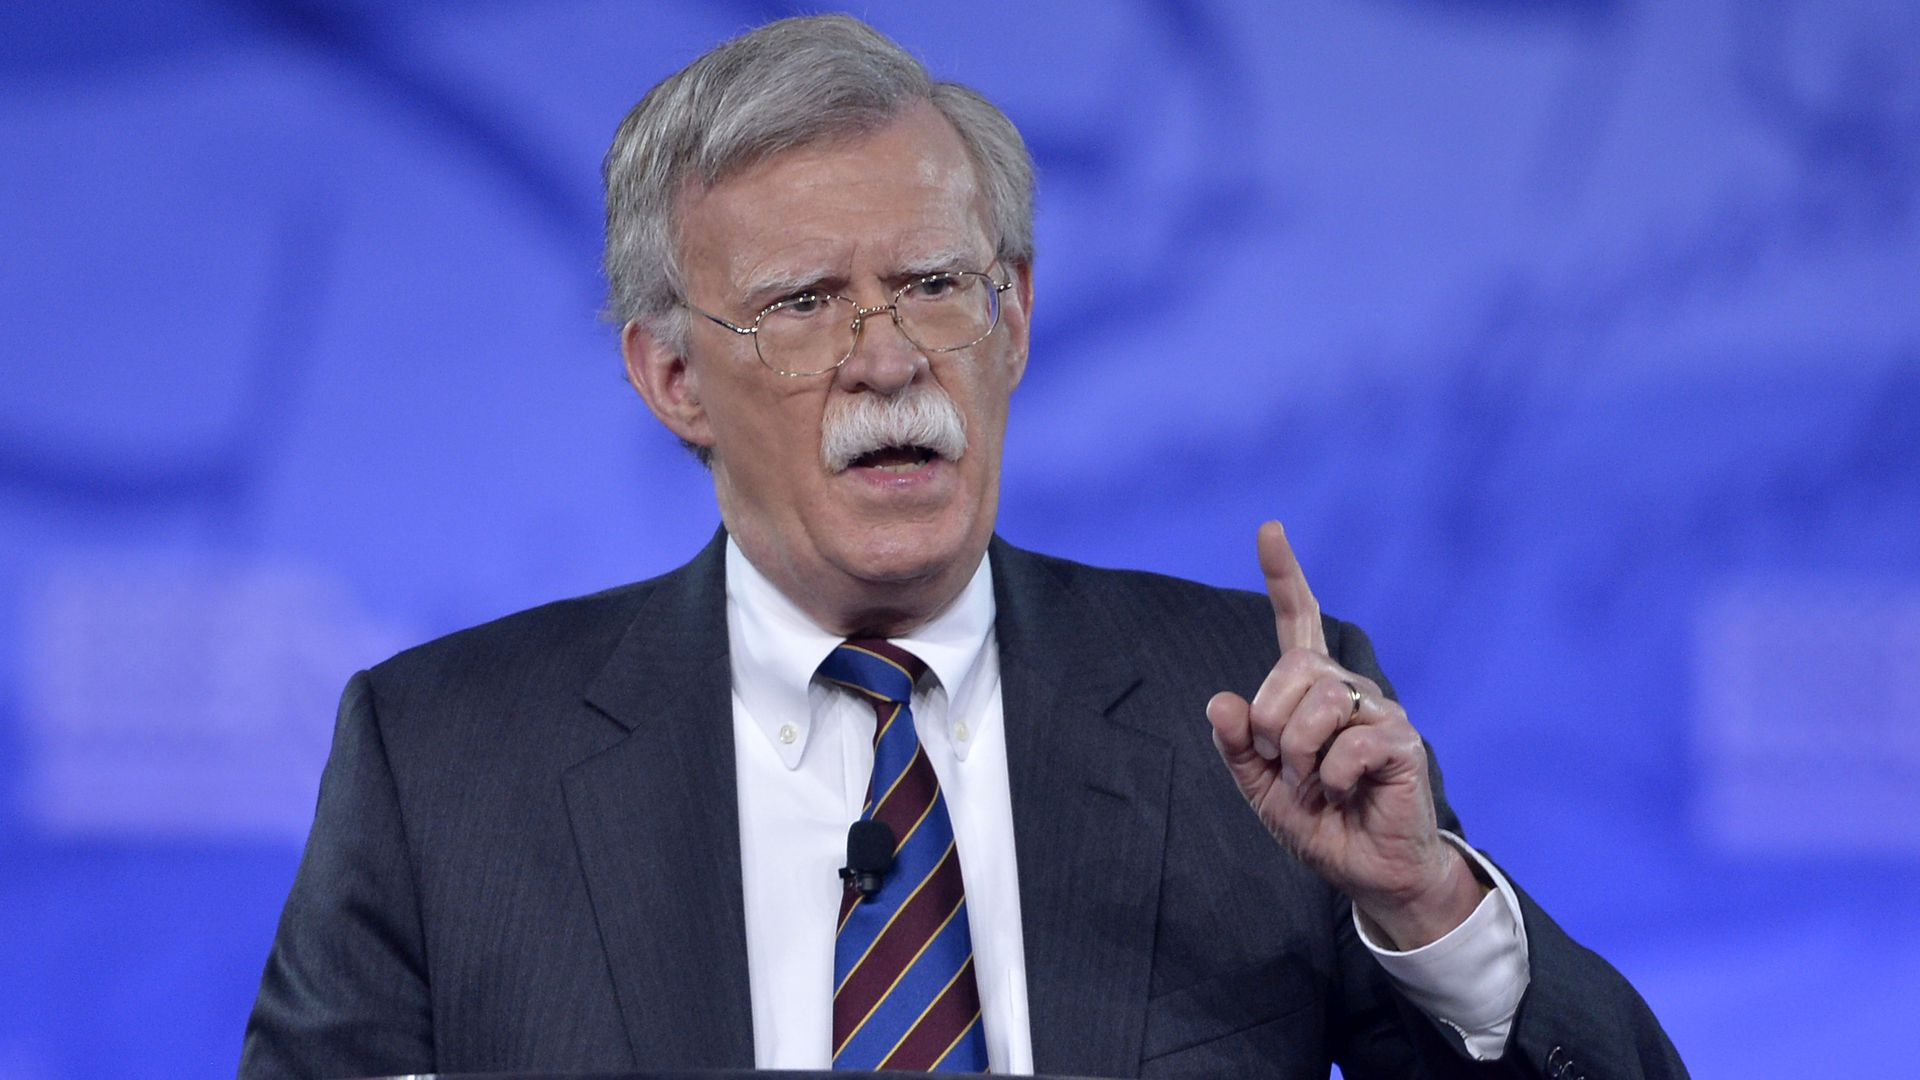 John Bolton speaks at CPAC in 2017.